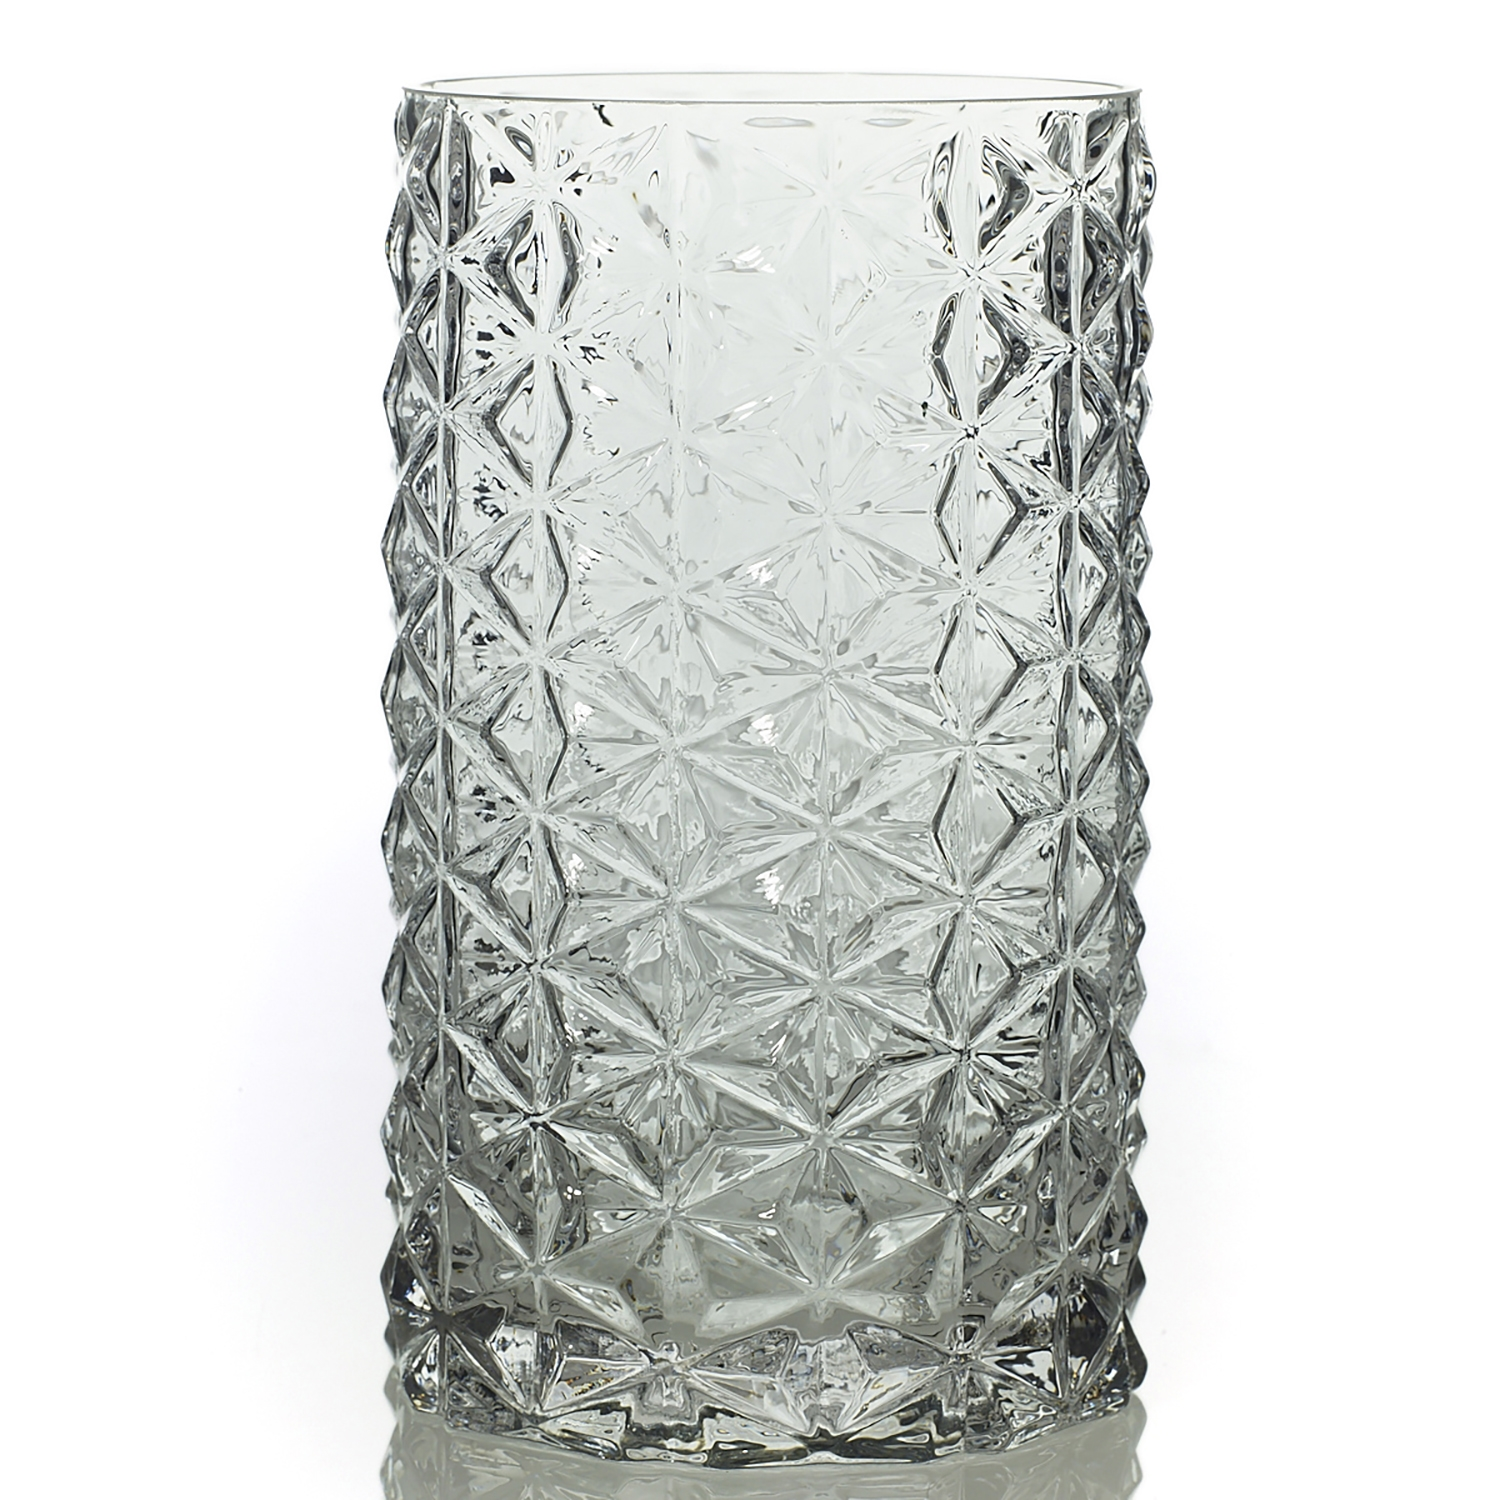 Loren Glass 4.75'' x 7.75''